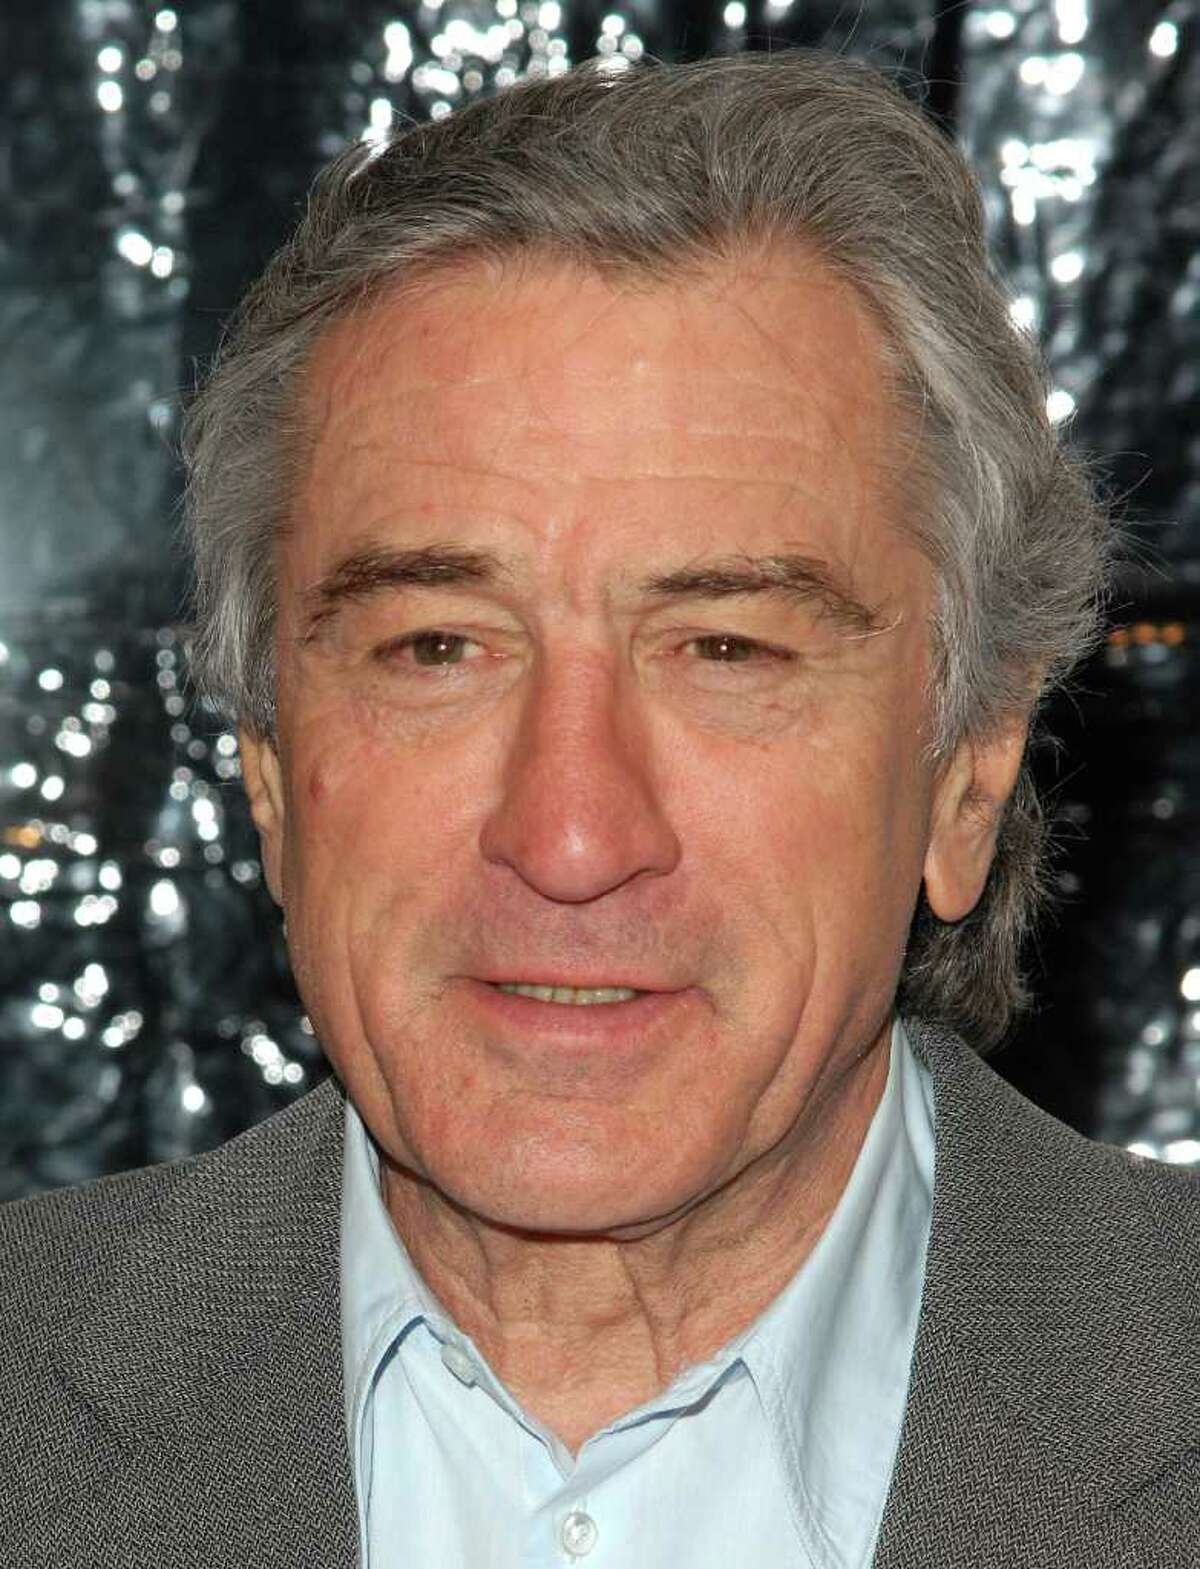 Actor Robert De Niro attends the premiere of